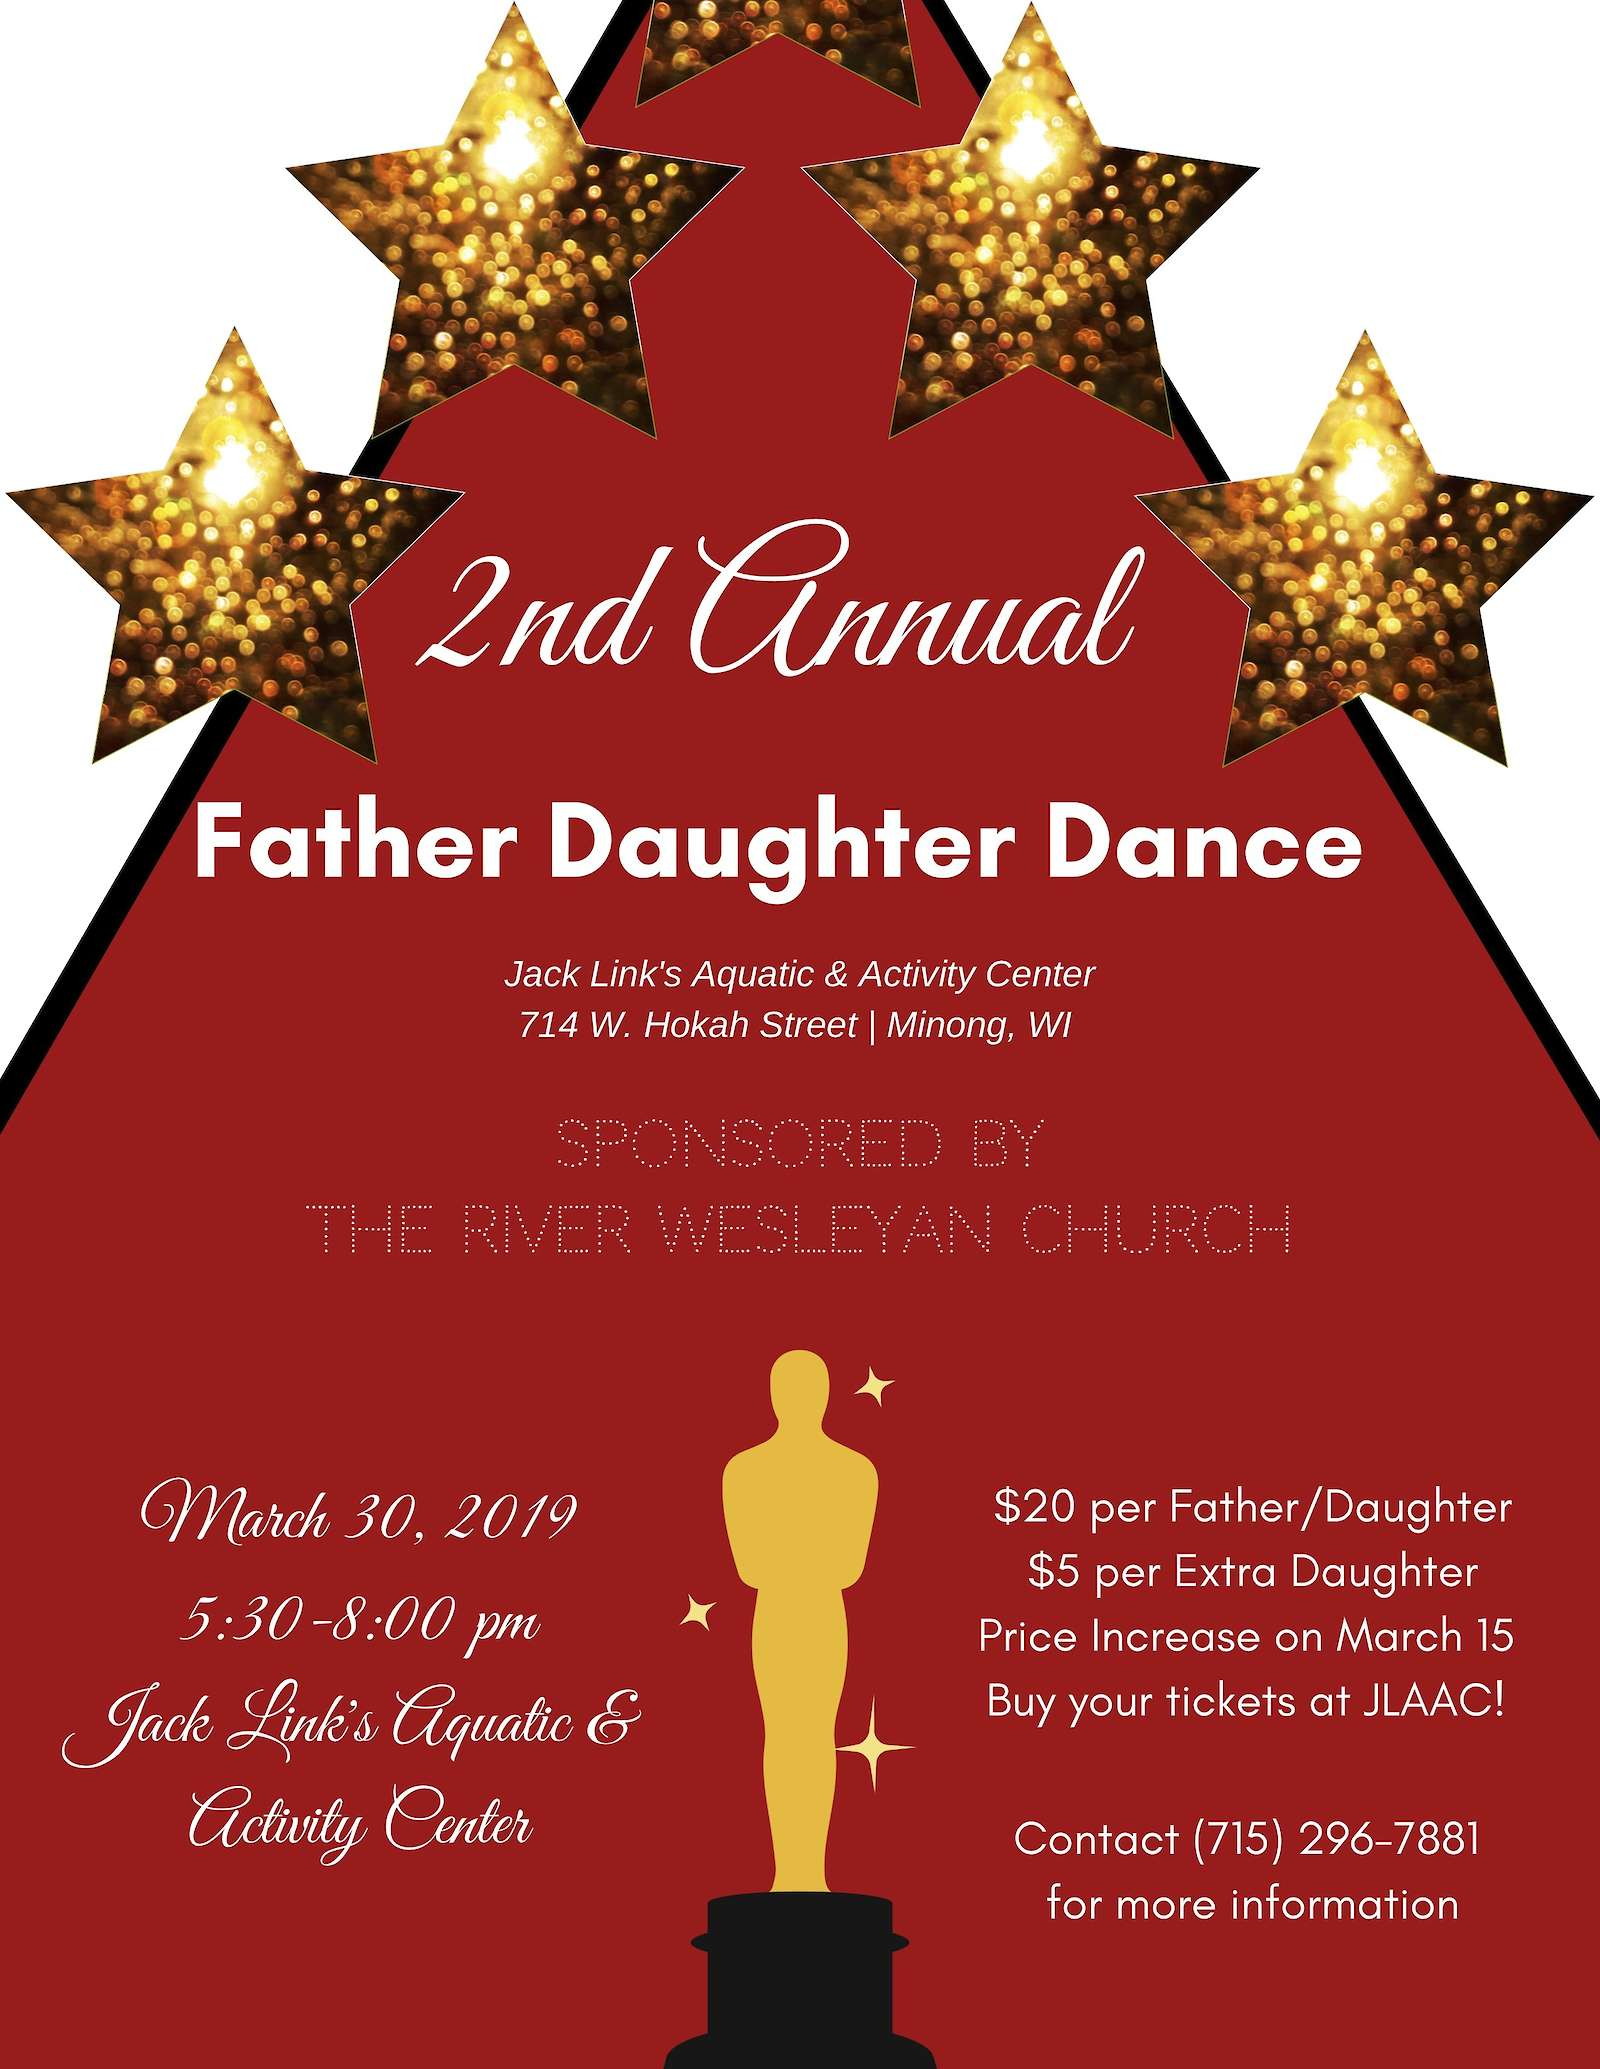 2nd Annual Father Daughter Dance At JLAAC In Minong | Recent